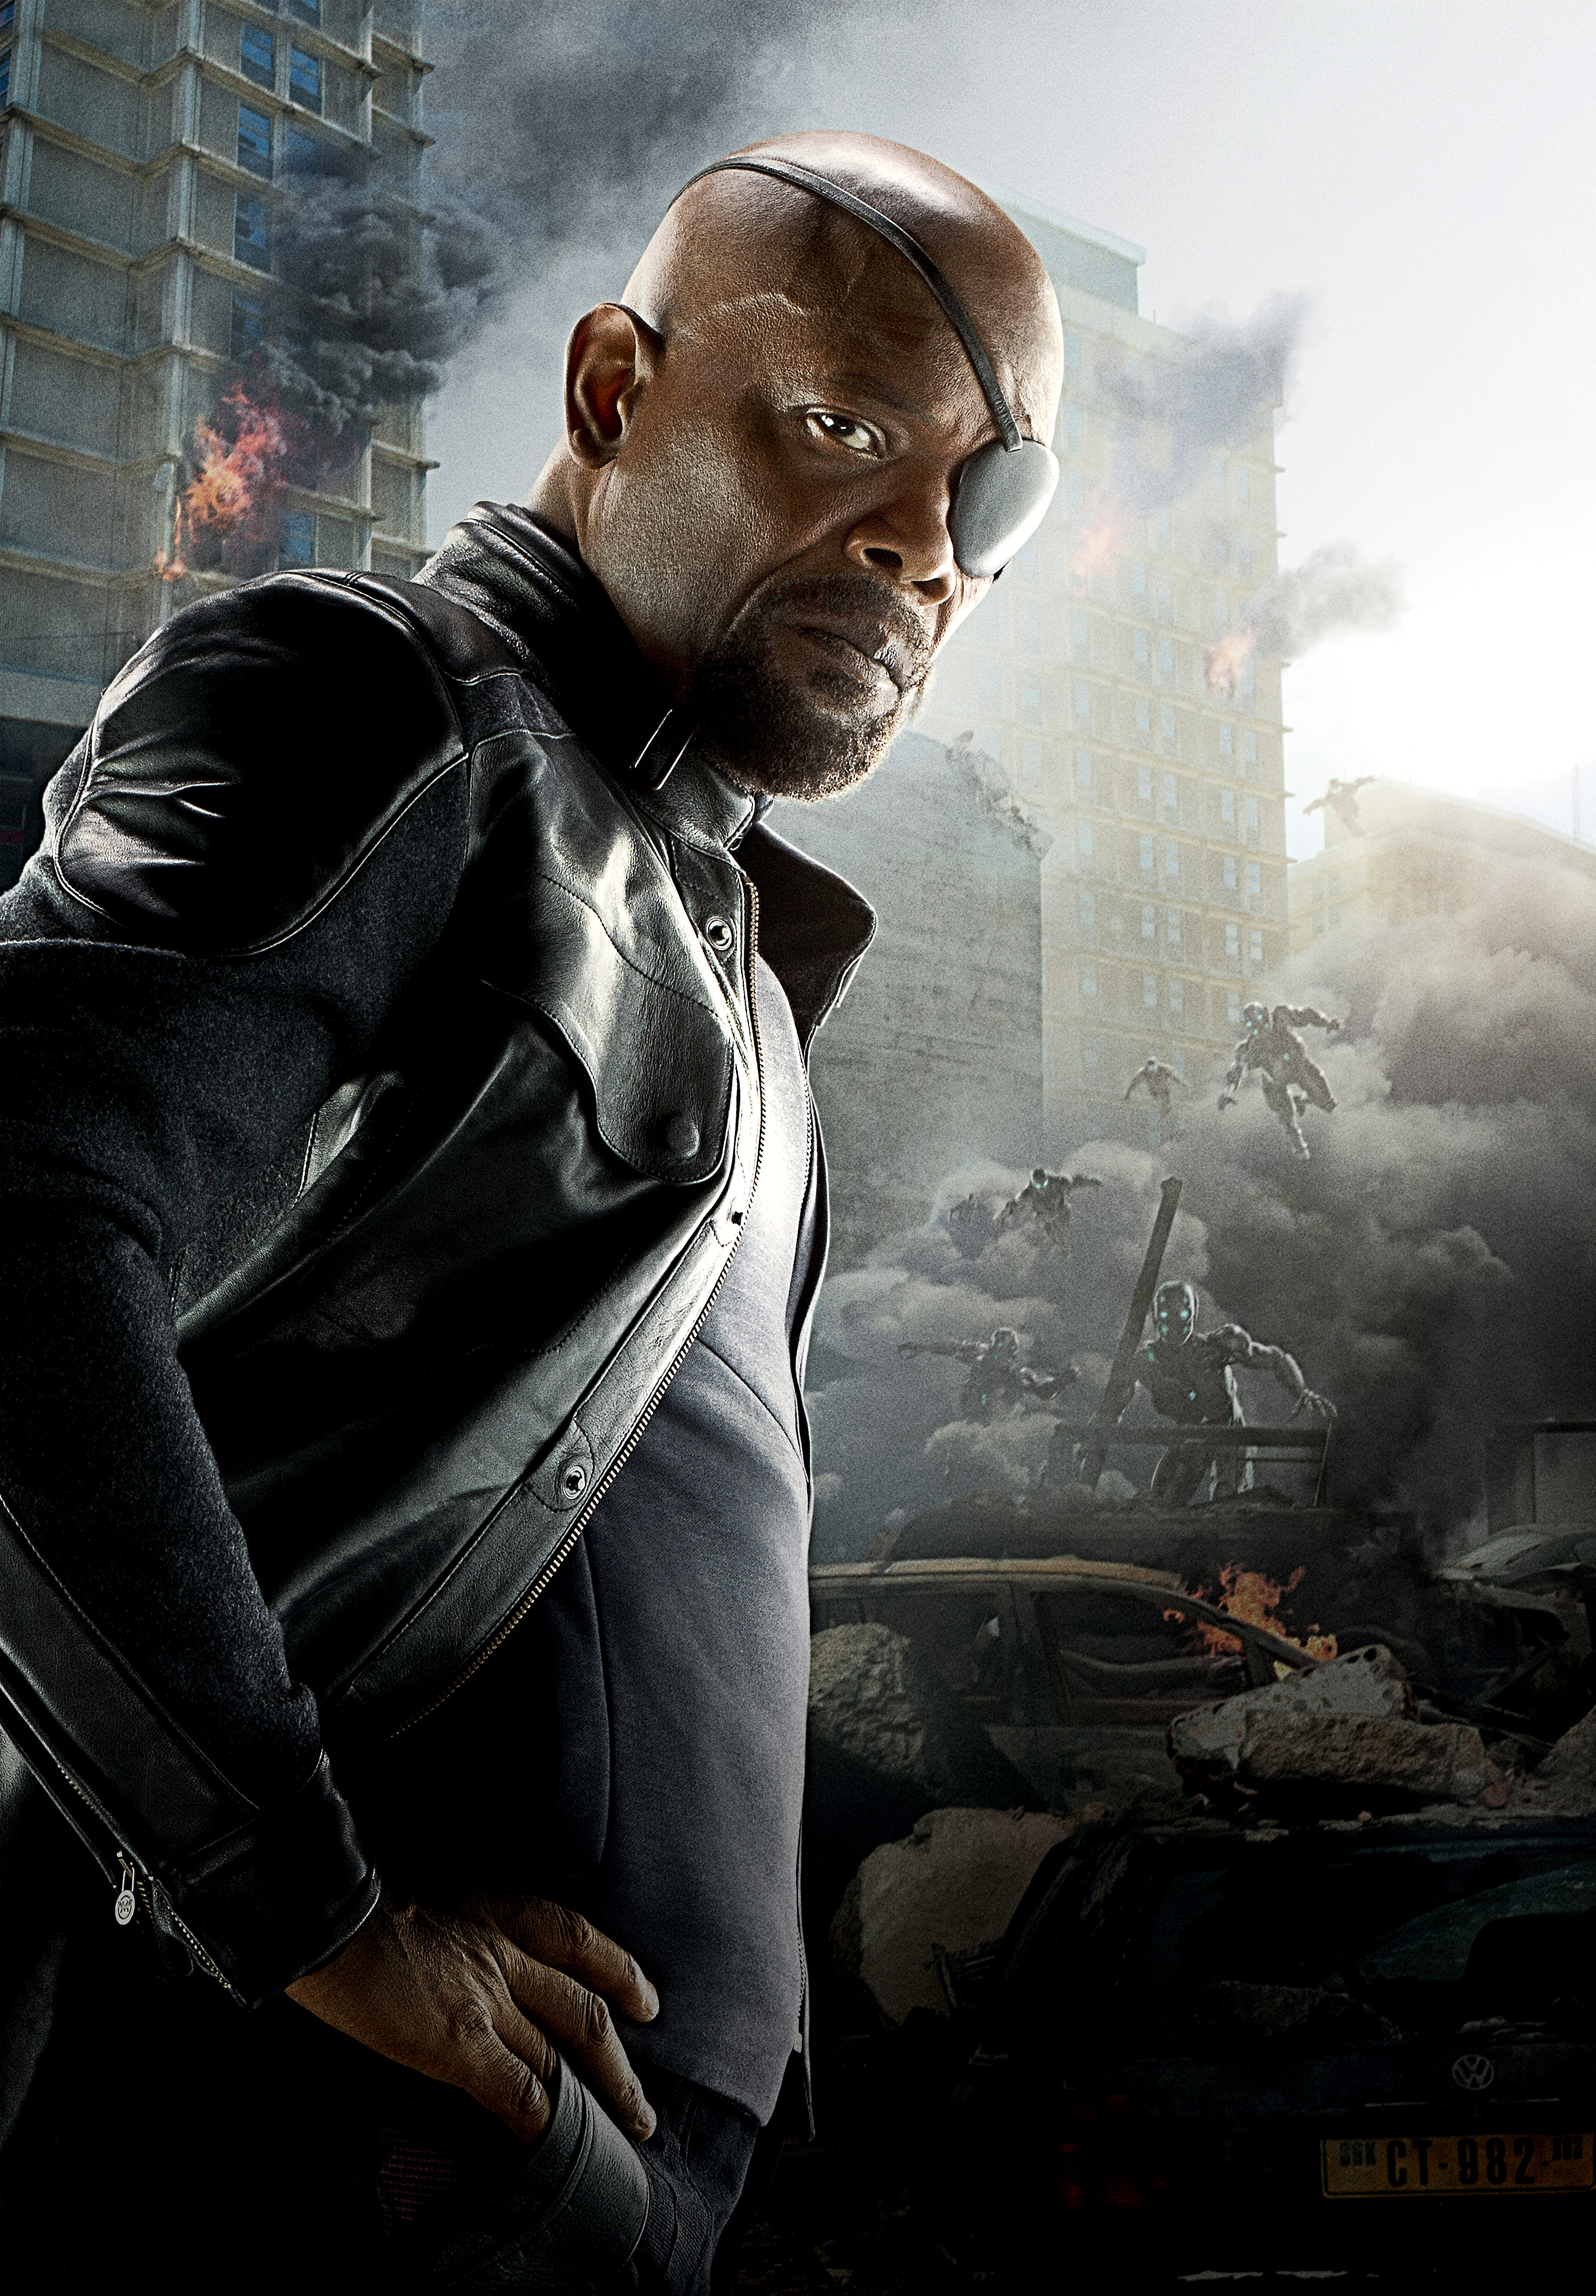 Nick Fury Marvel Cinematic Universe Wiki